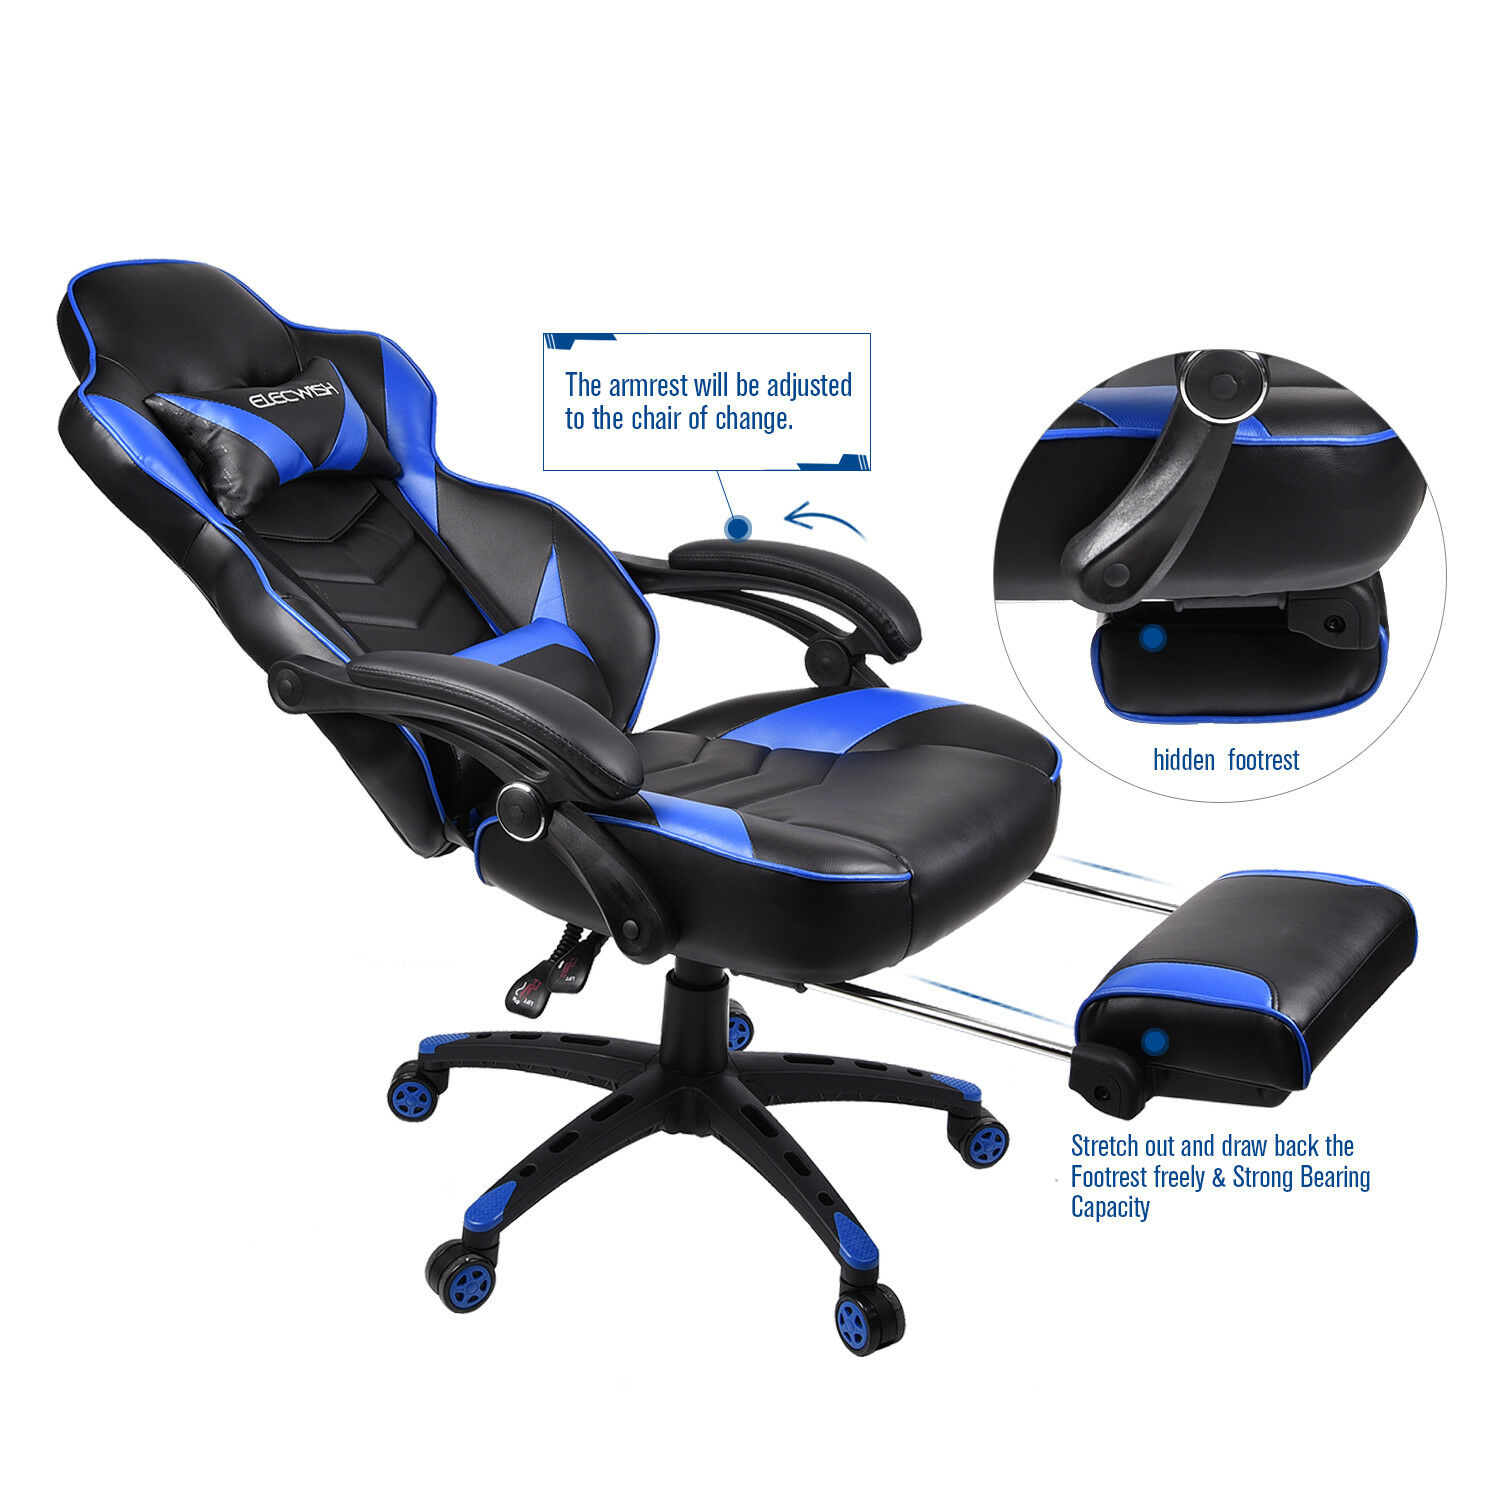 reclining gaming chair lyre back chairs and table office racing seats computer high executive footrest rocker us ebay